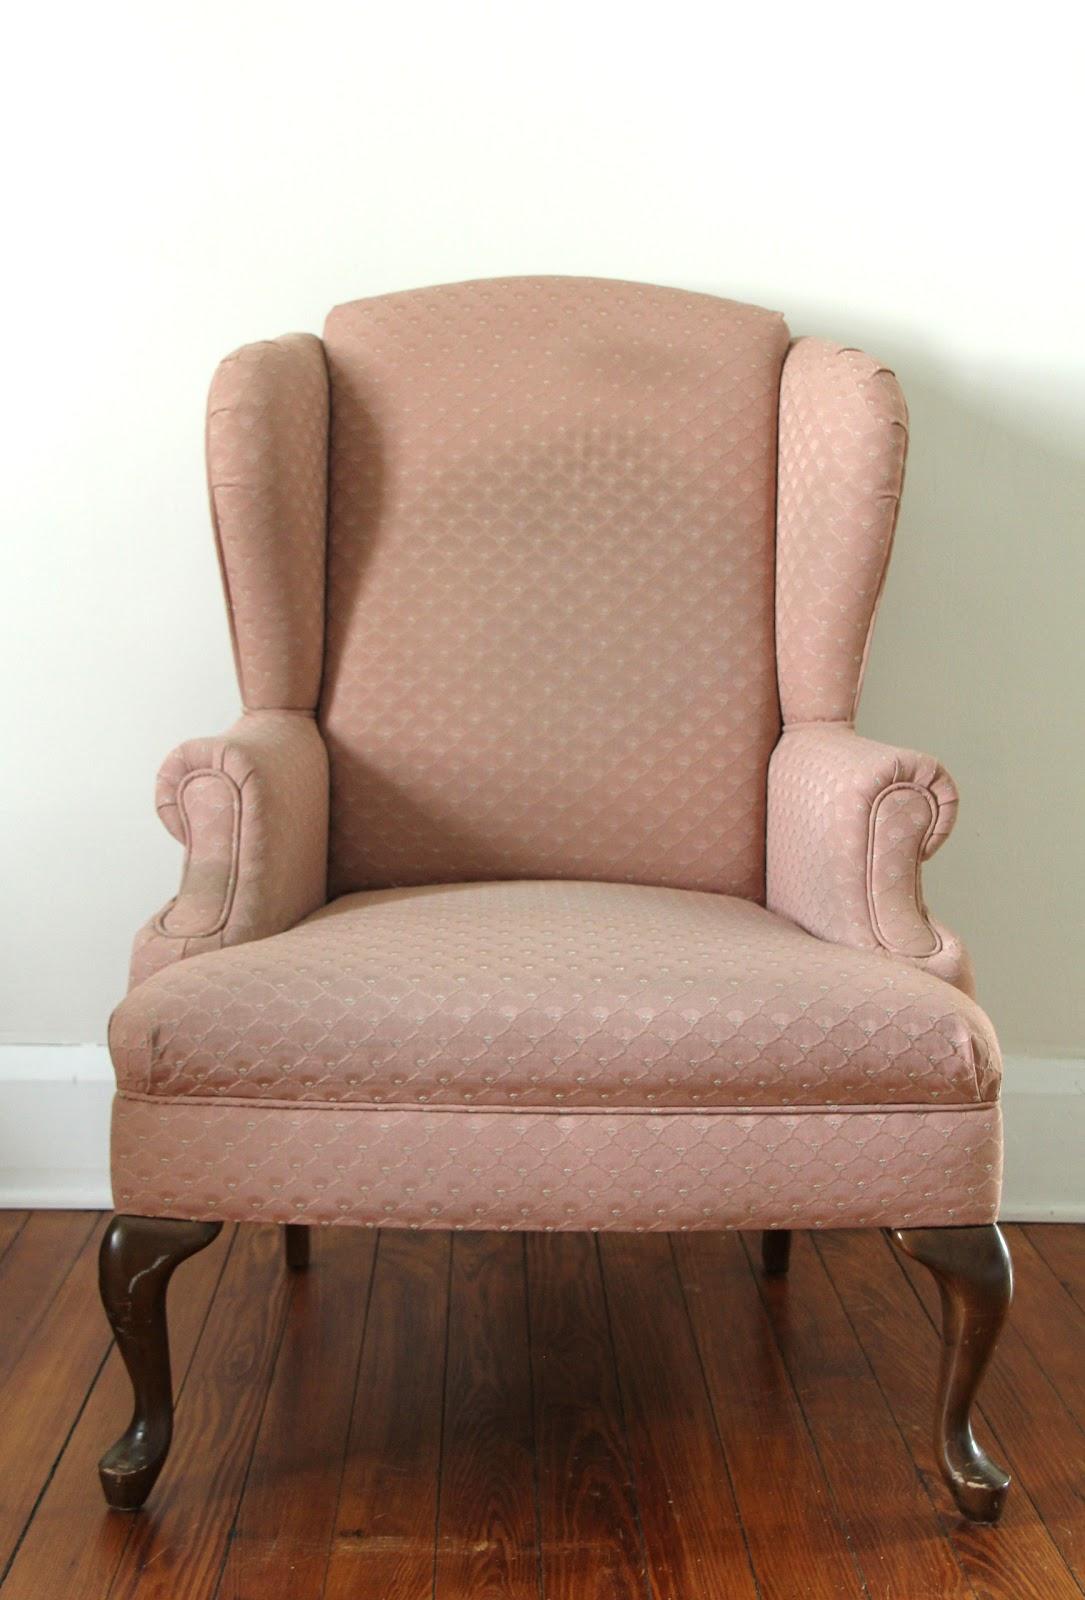 lovely little life upholstered wingback chair project